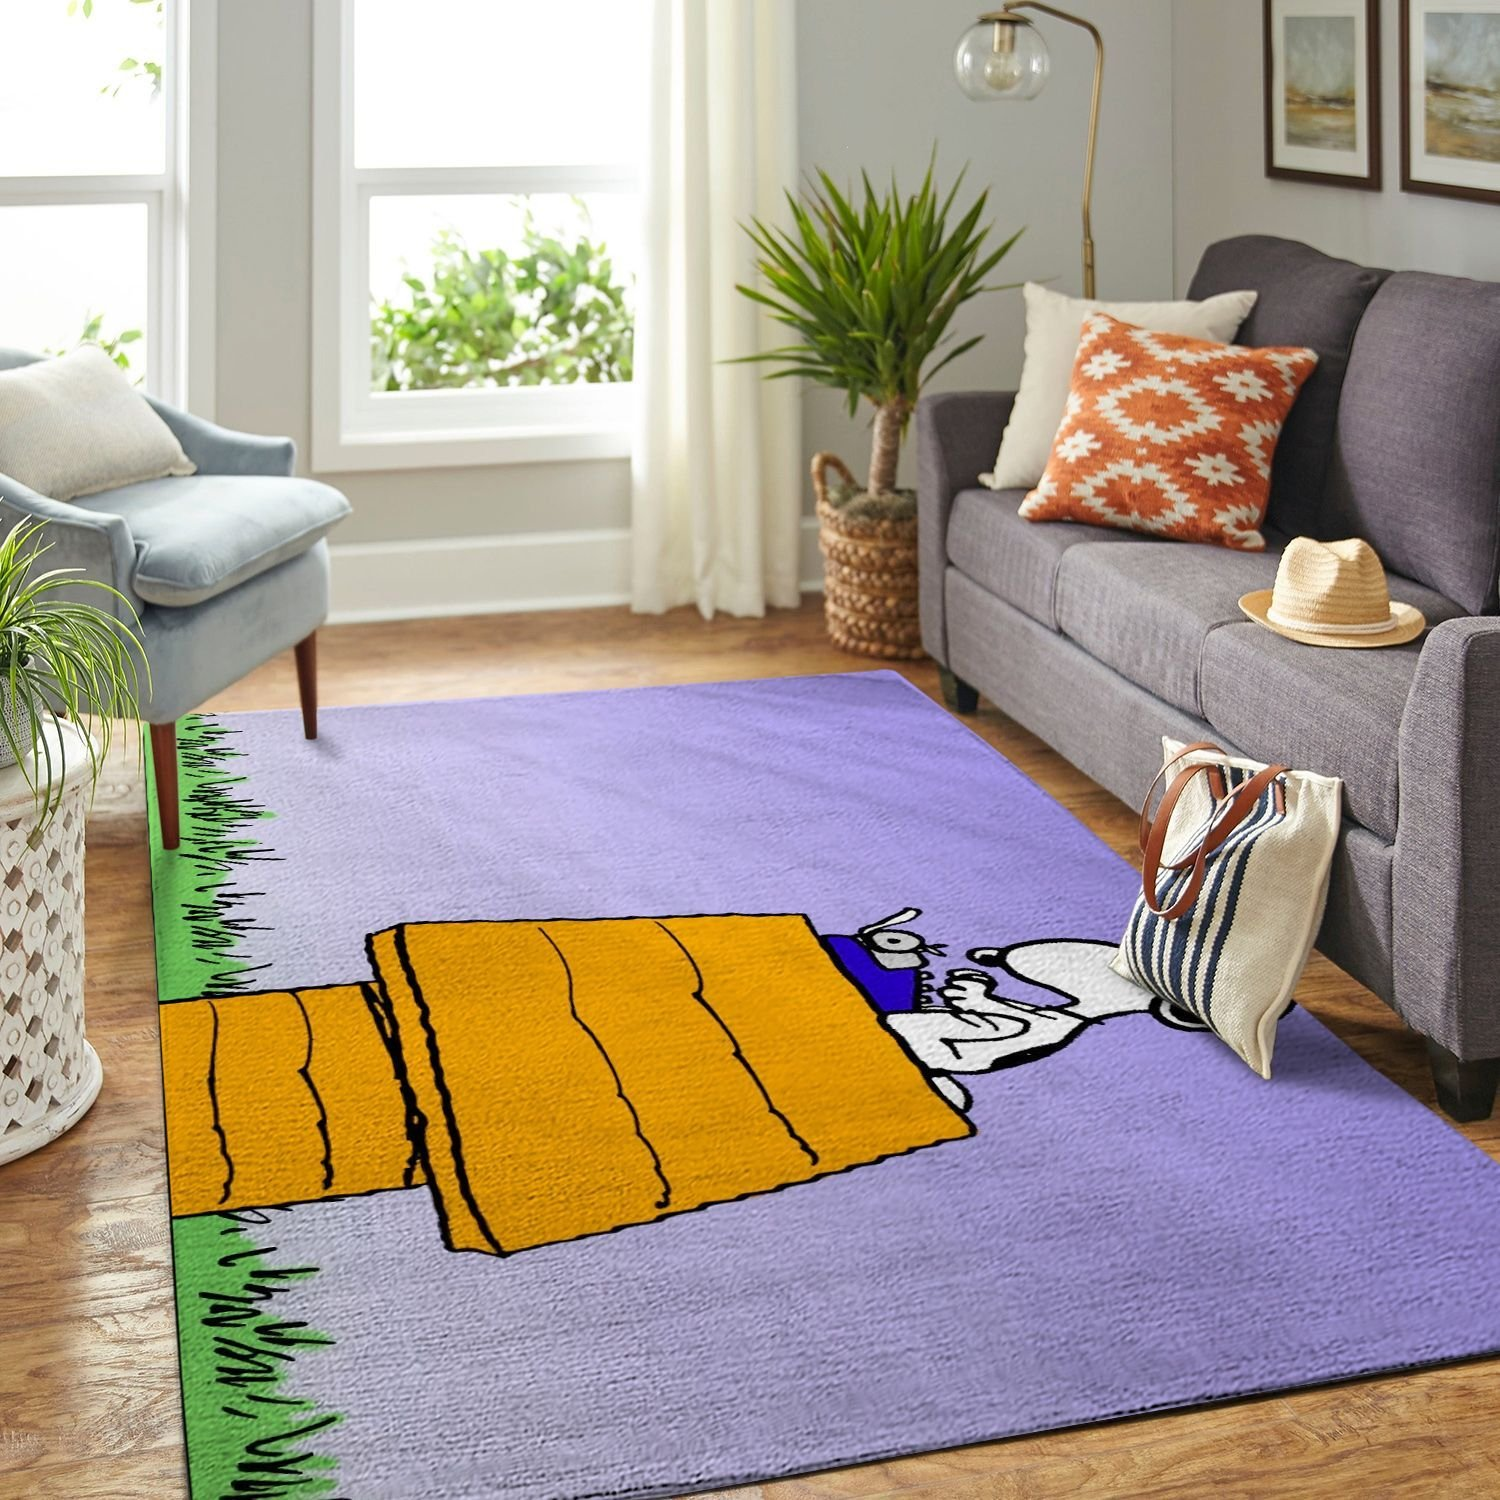 Amazon Snoopy Dog And Peanuts Comic Living Room Area No6537 Rug